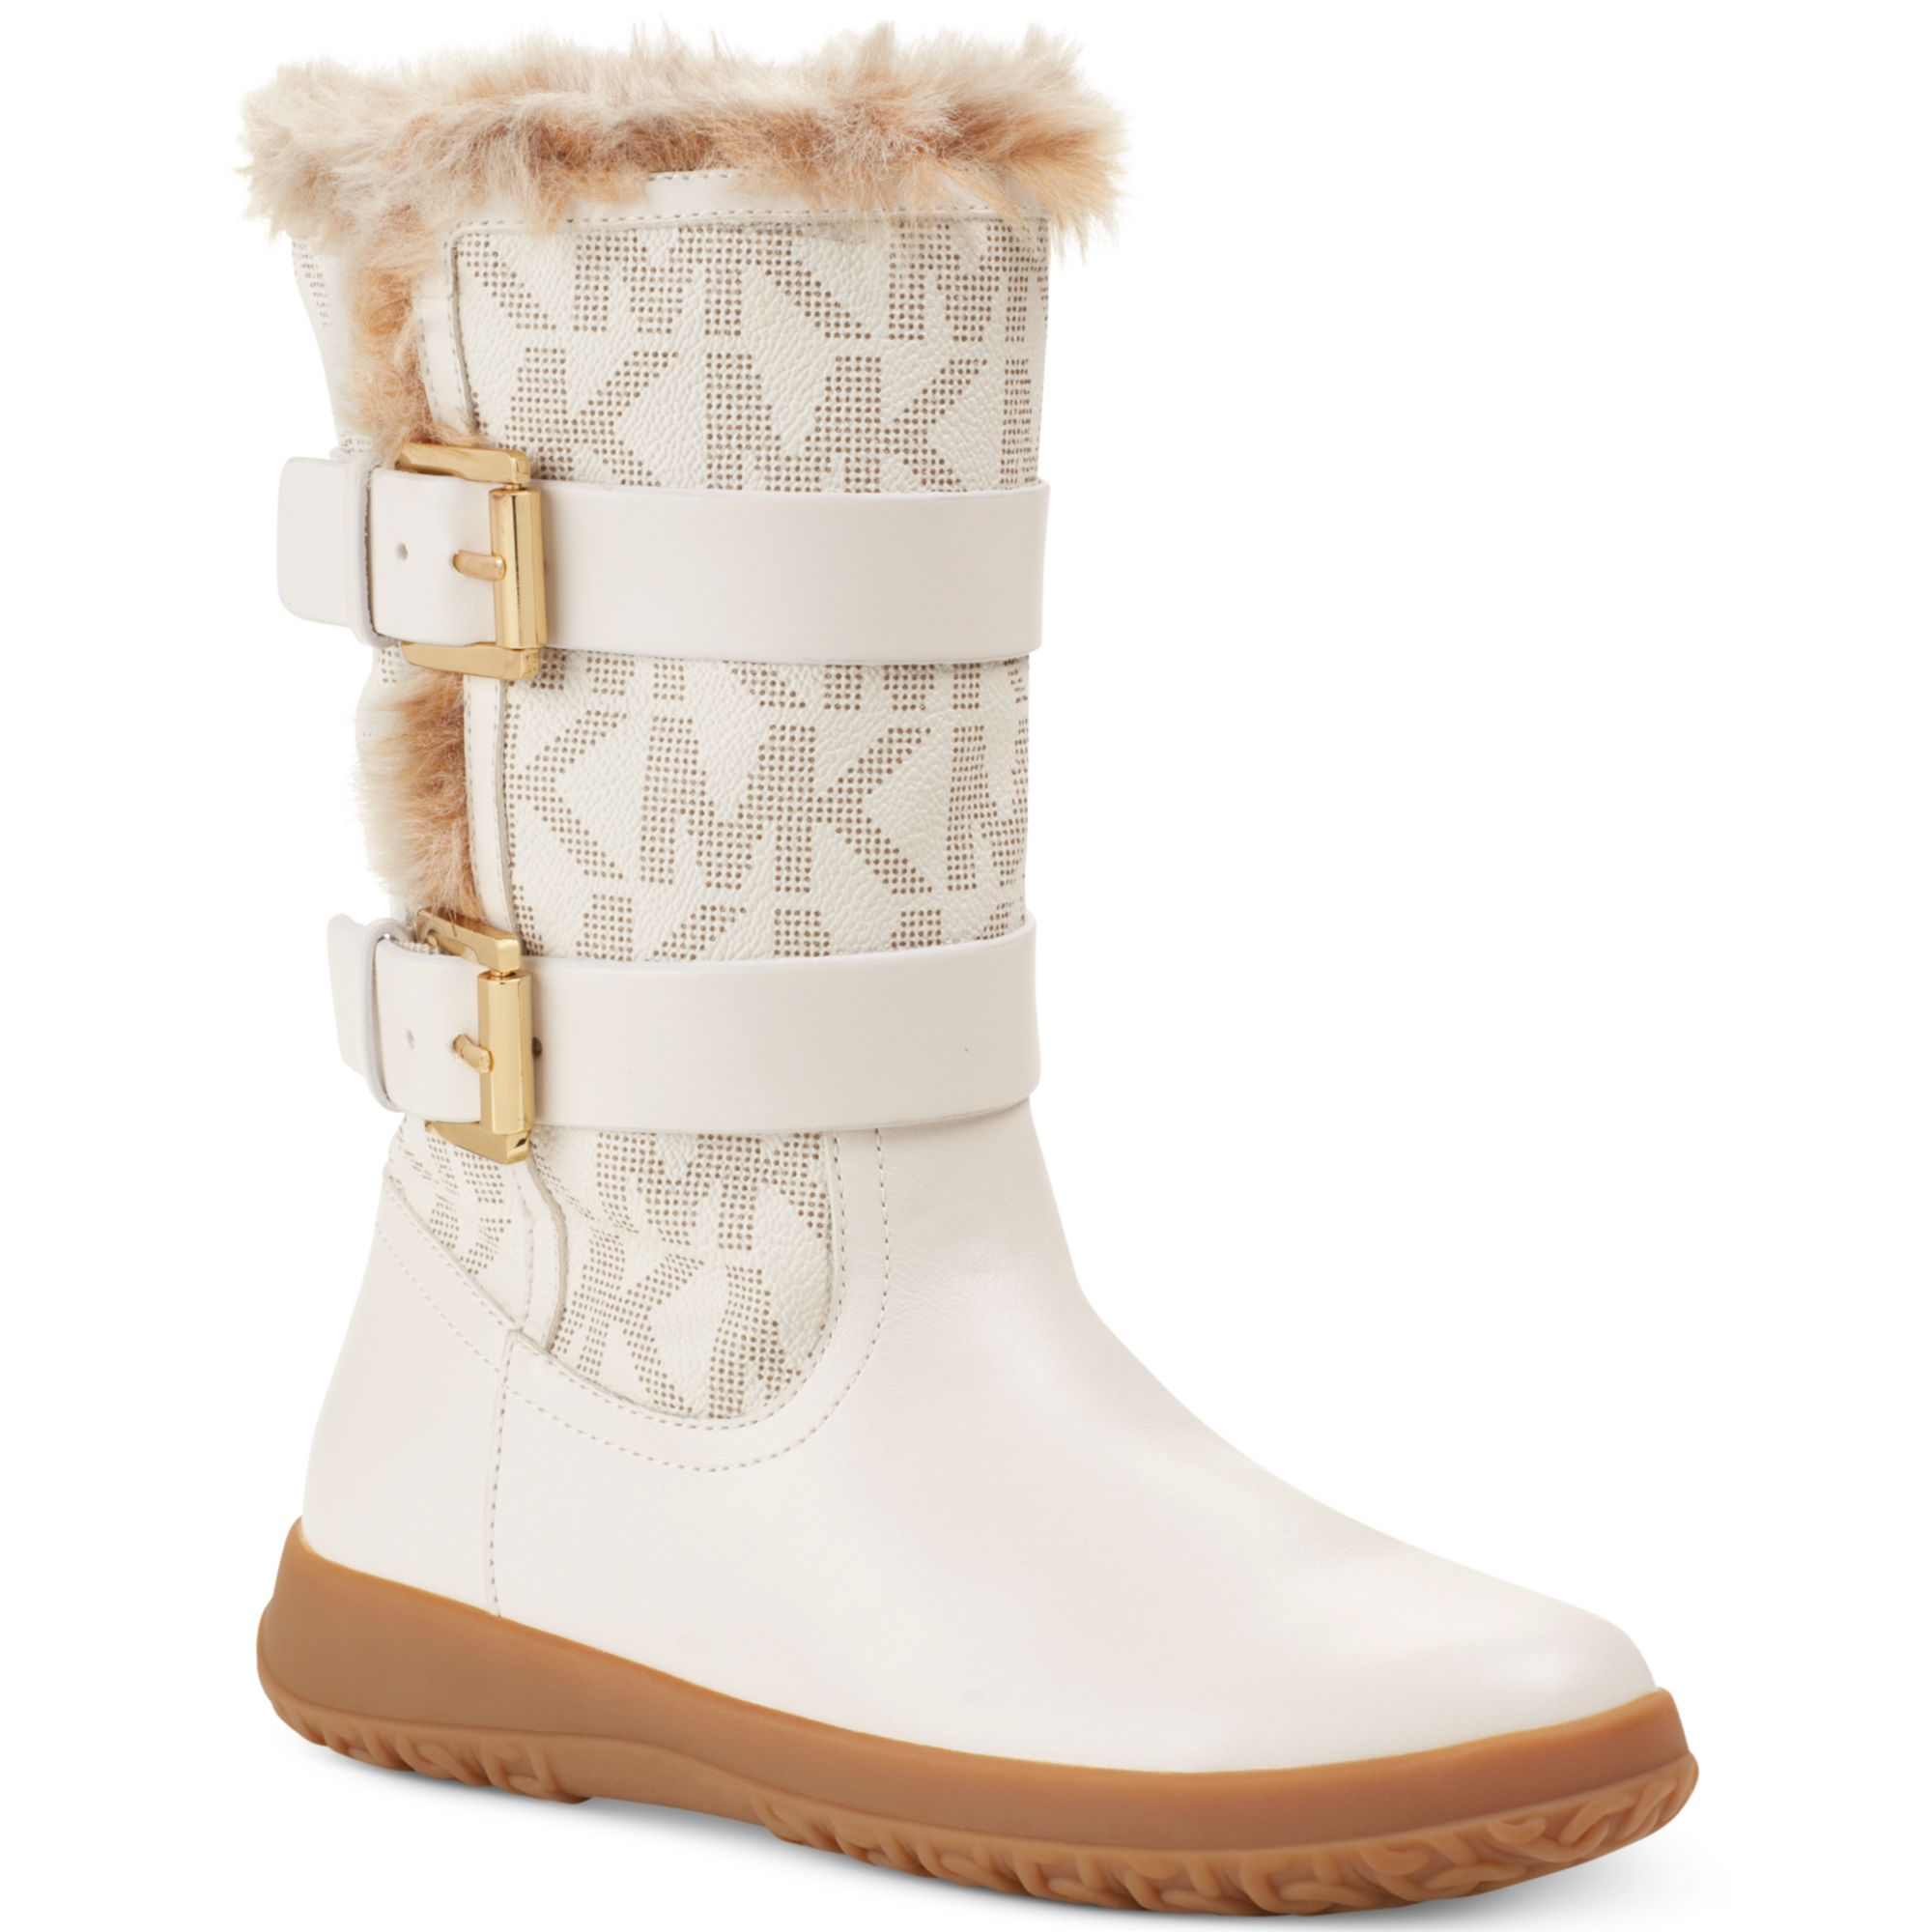 michael kors aaran cold weather faux fur boots in white vanilla logo lyst. Black Bedroom Furniture Sets. Home Design Ideas